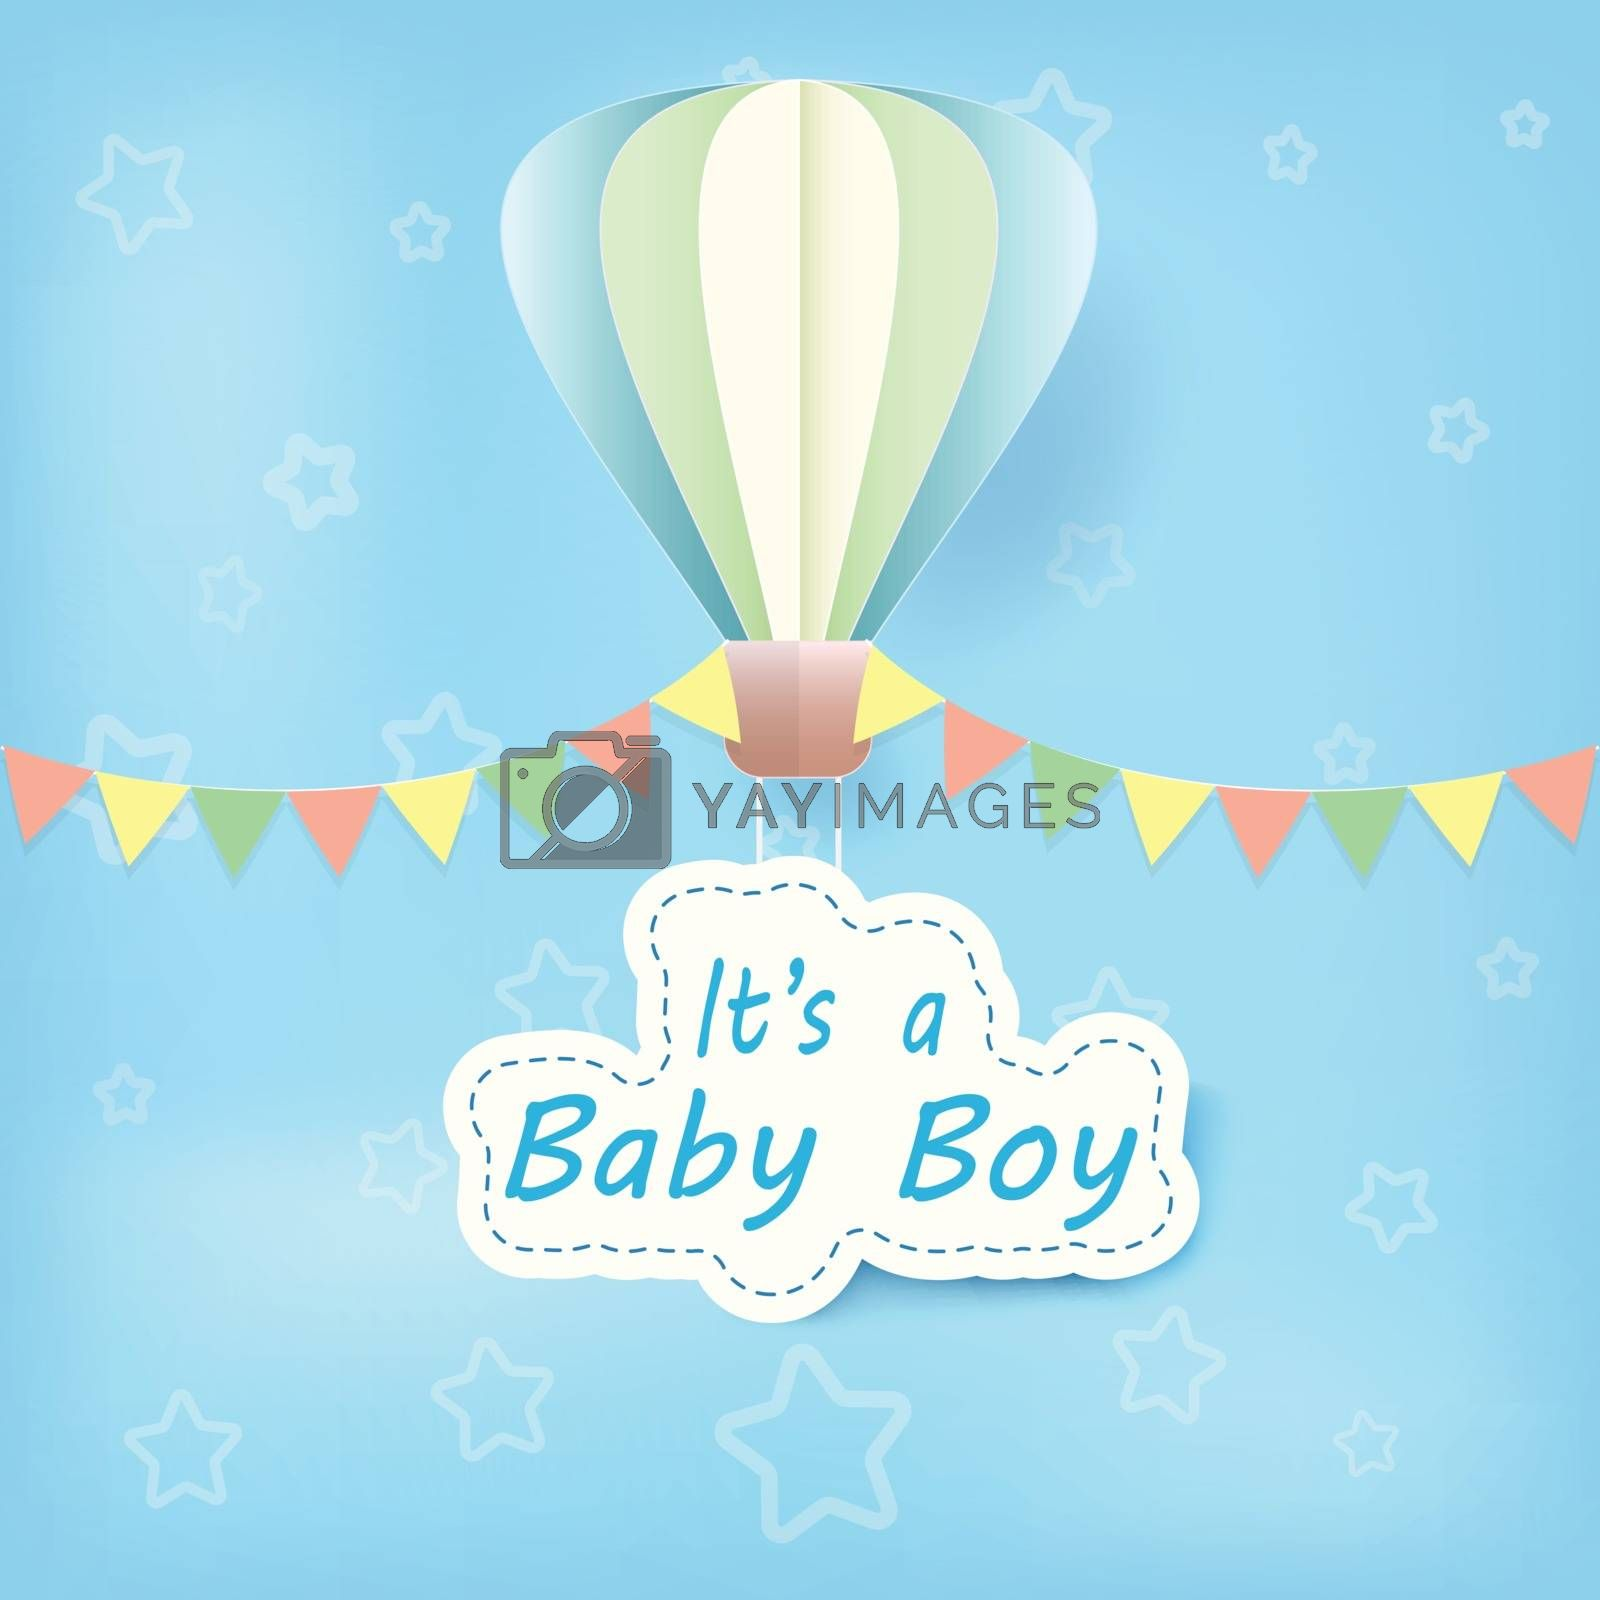 Paper art of hot air balloon with baby boy text shower card paper cut style illustration blue background